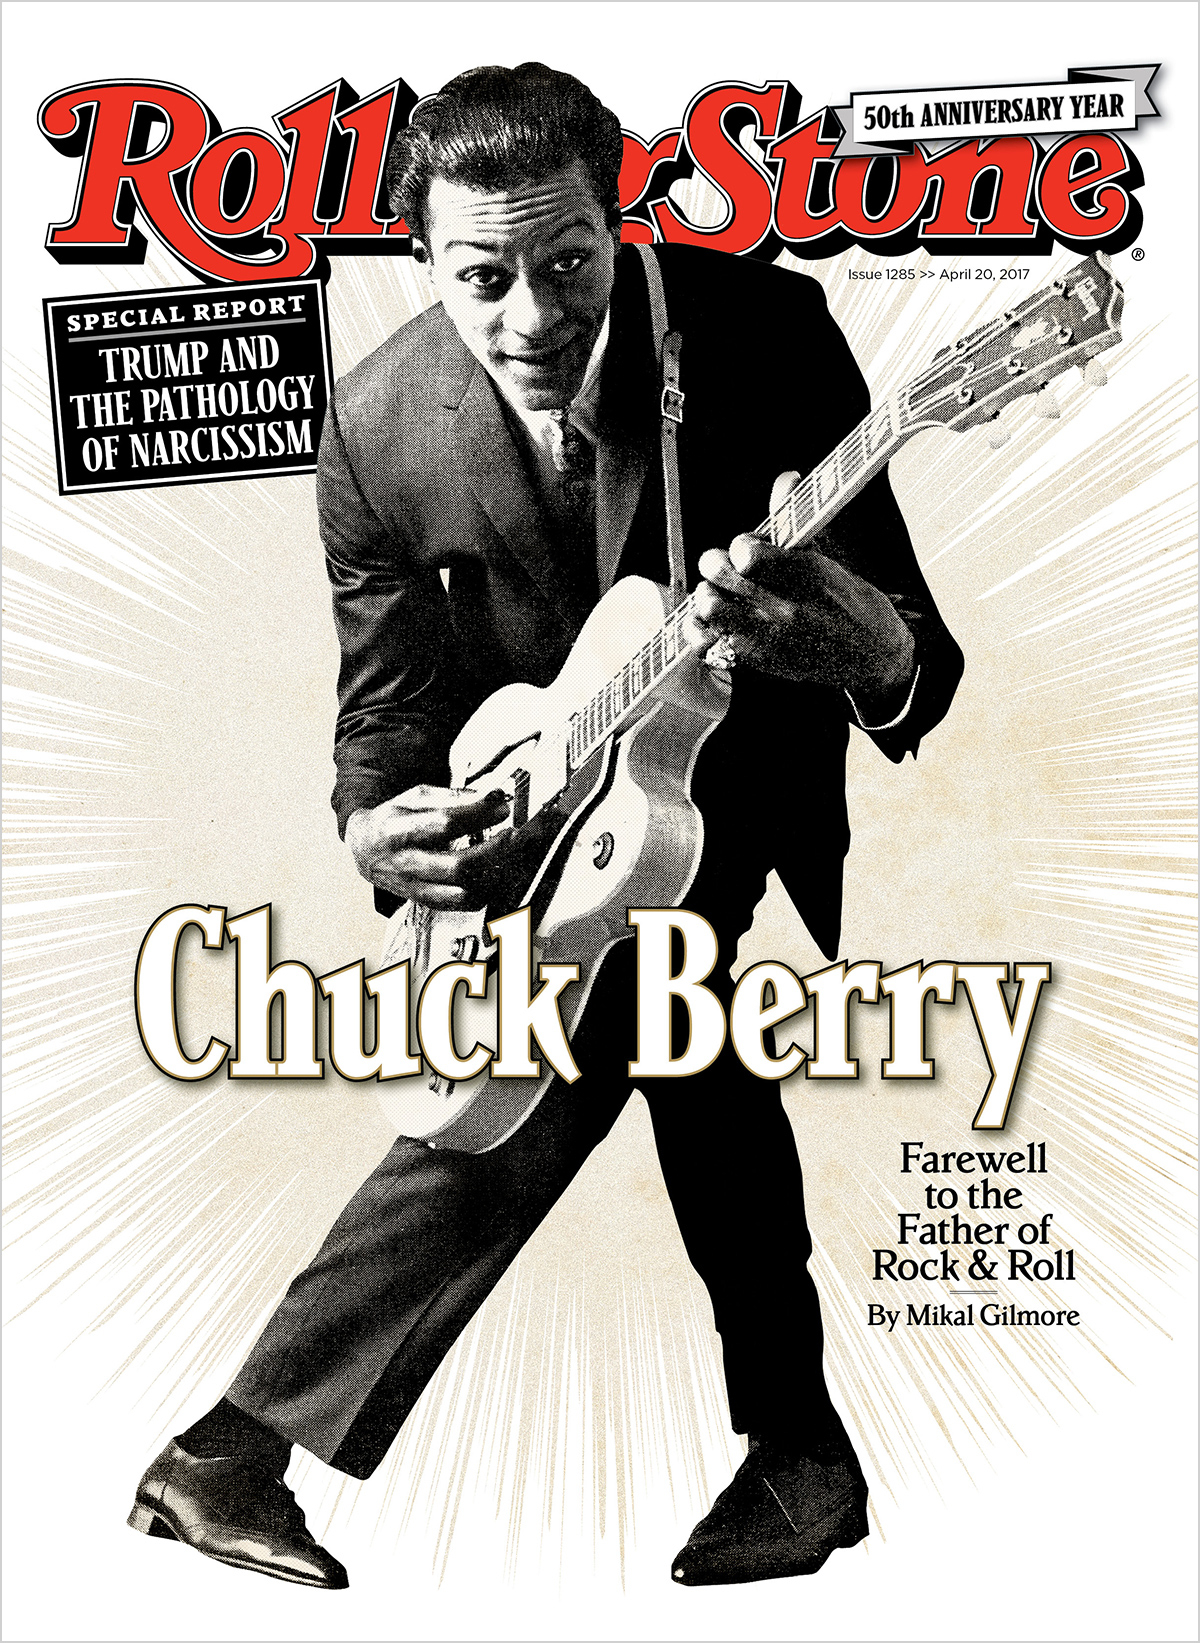 This Is A Chuck Berry Tribute The Perfect Lighting Design Piece 9 lighting design piece This Is A Chuck Berry Tribute: The Perfect Lighting Design Piece This Is A Chuck Berry Tribute The Perfect Lighting Design Piece 9